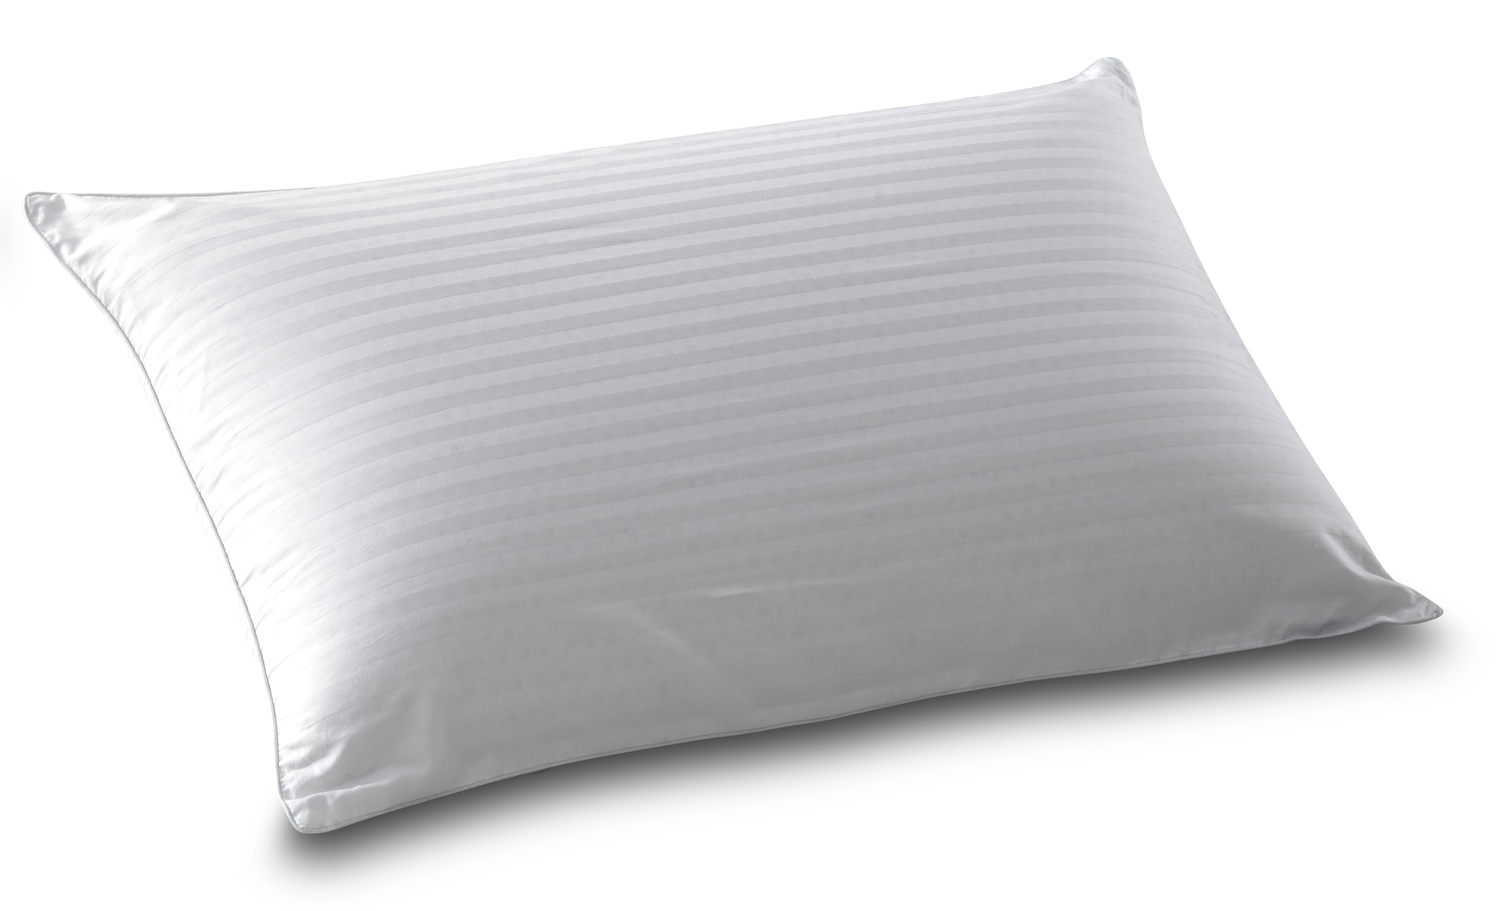 pillow op sharpen prd even latex form product jsp wid pillows restful hei nights